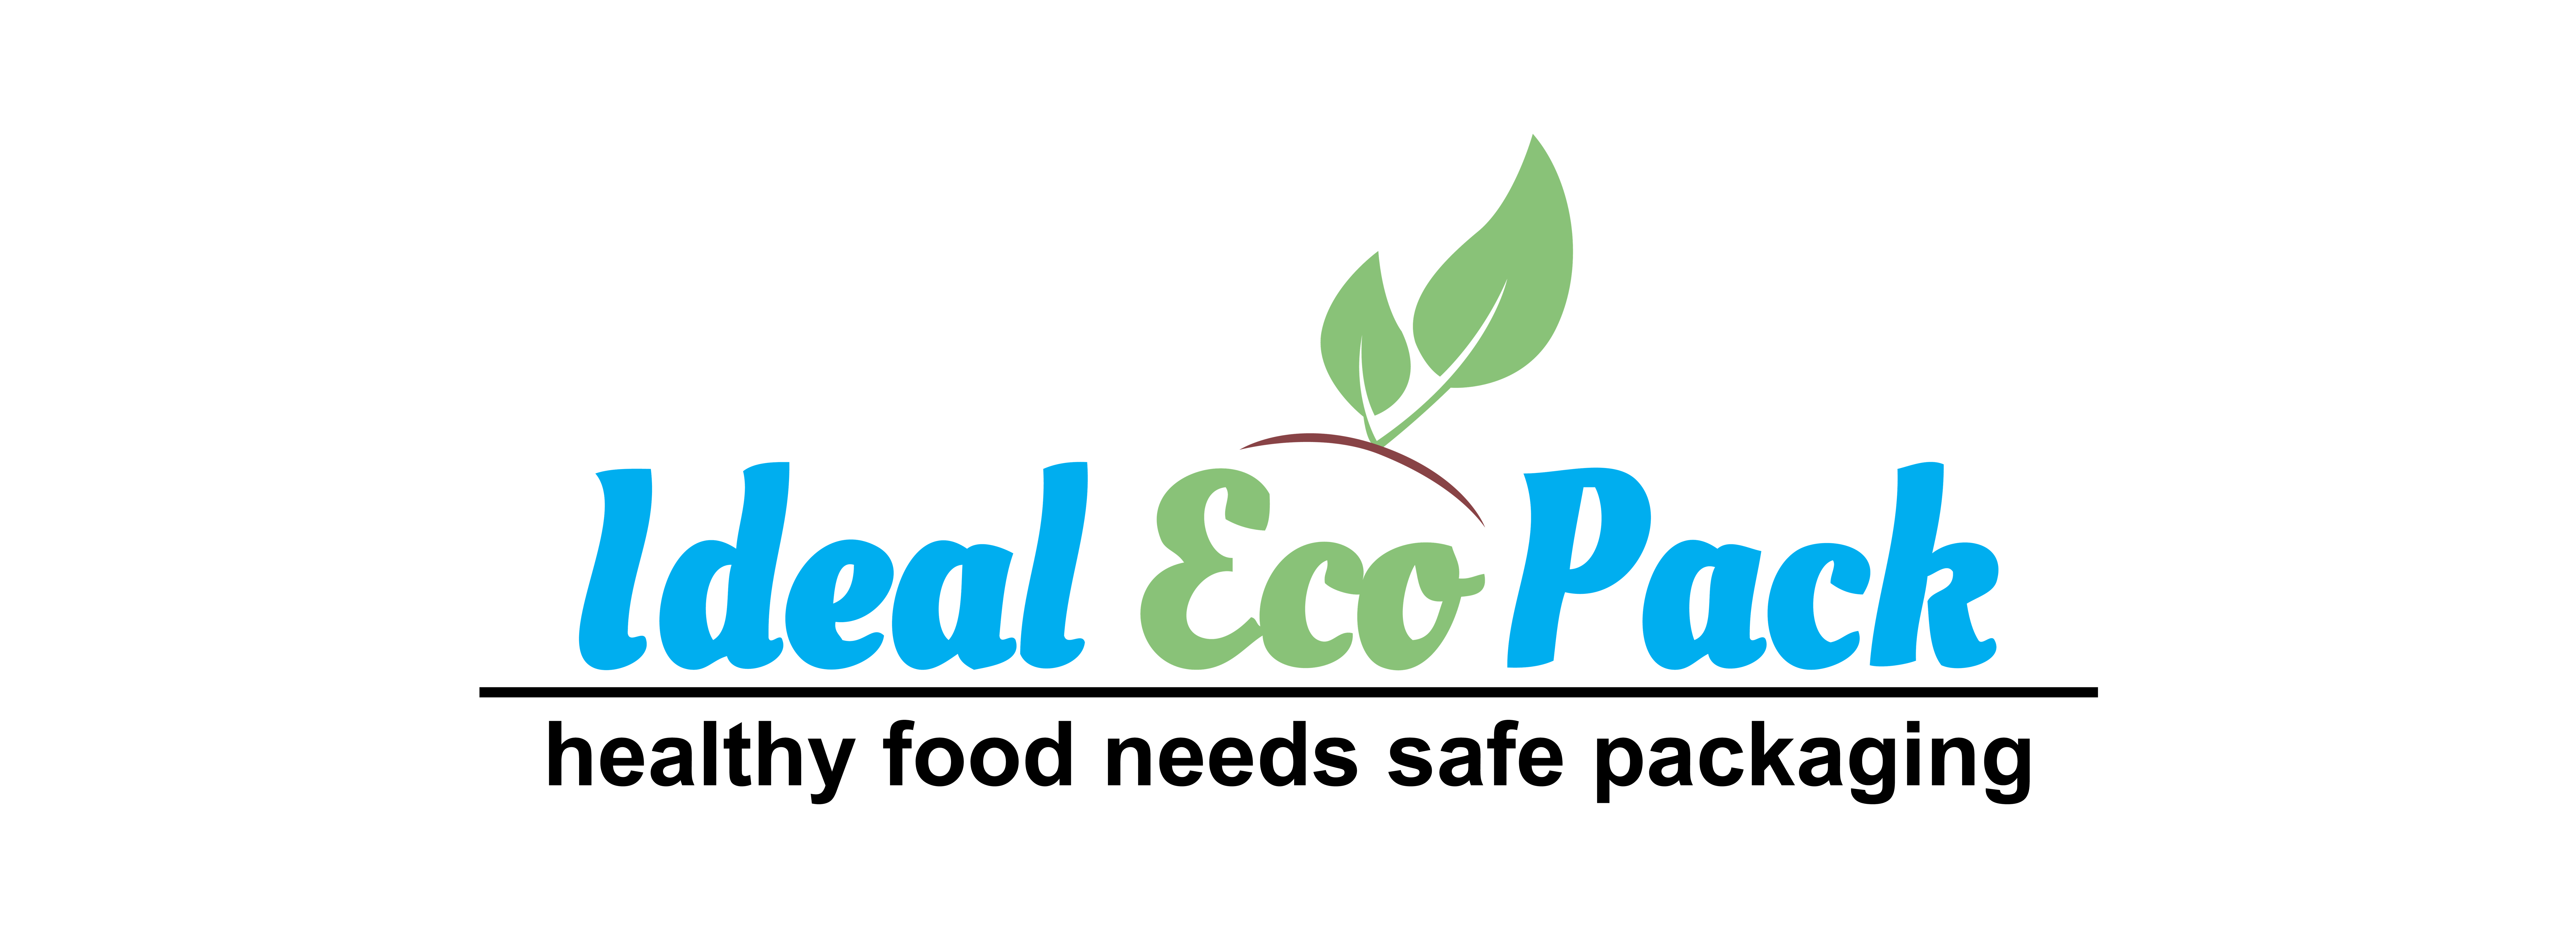 Ideal Eco Pack